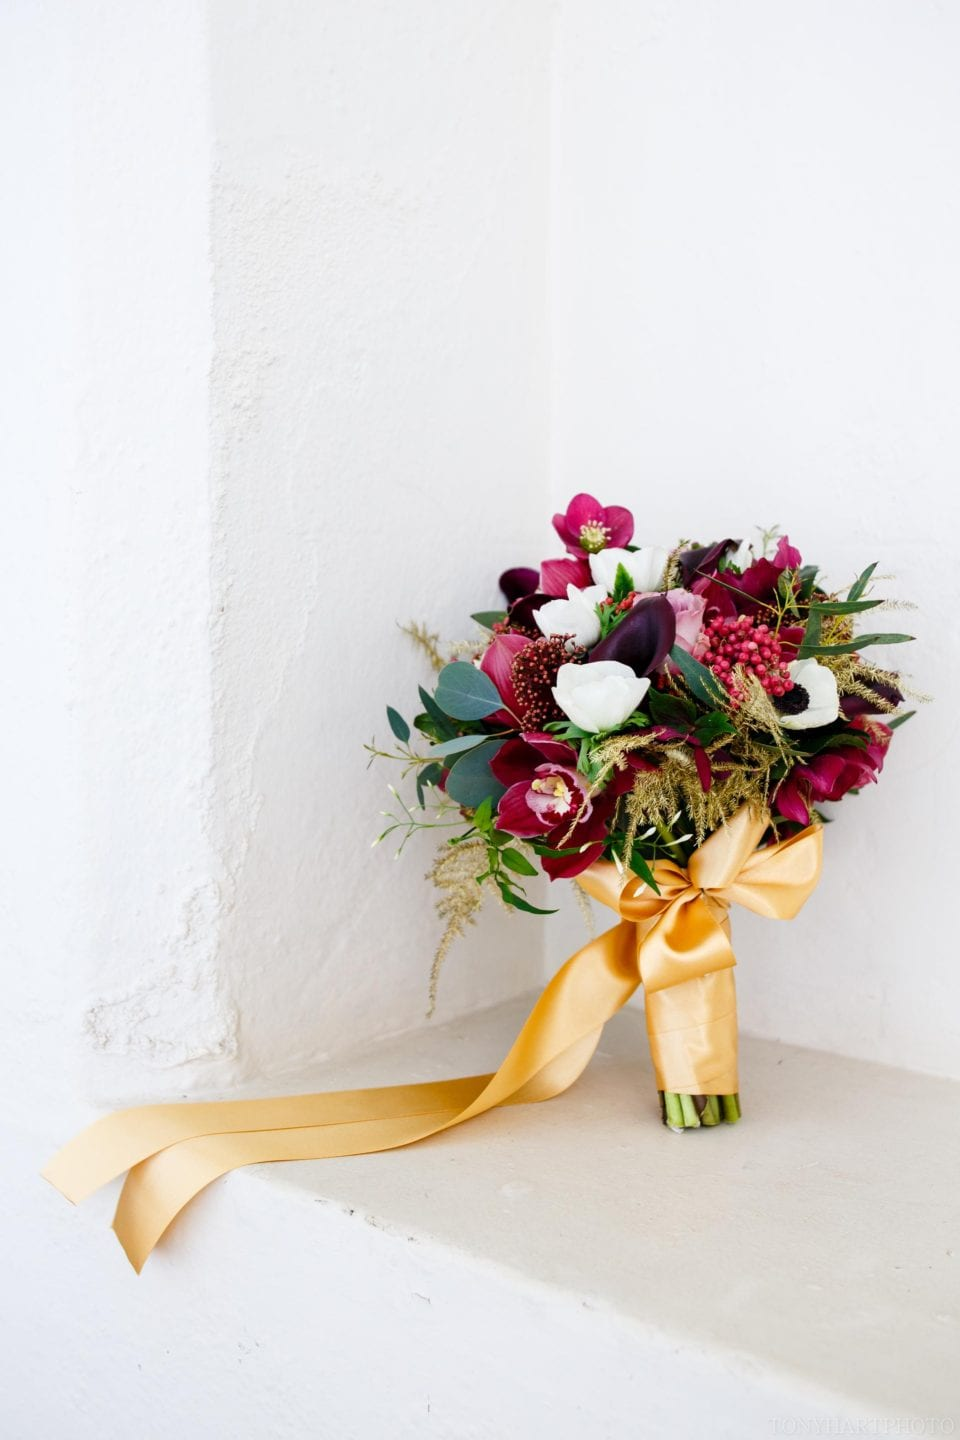 Jenn's beautiful wedding bouquet by the talented florists at Moutan